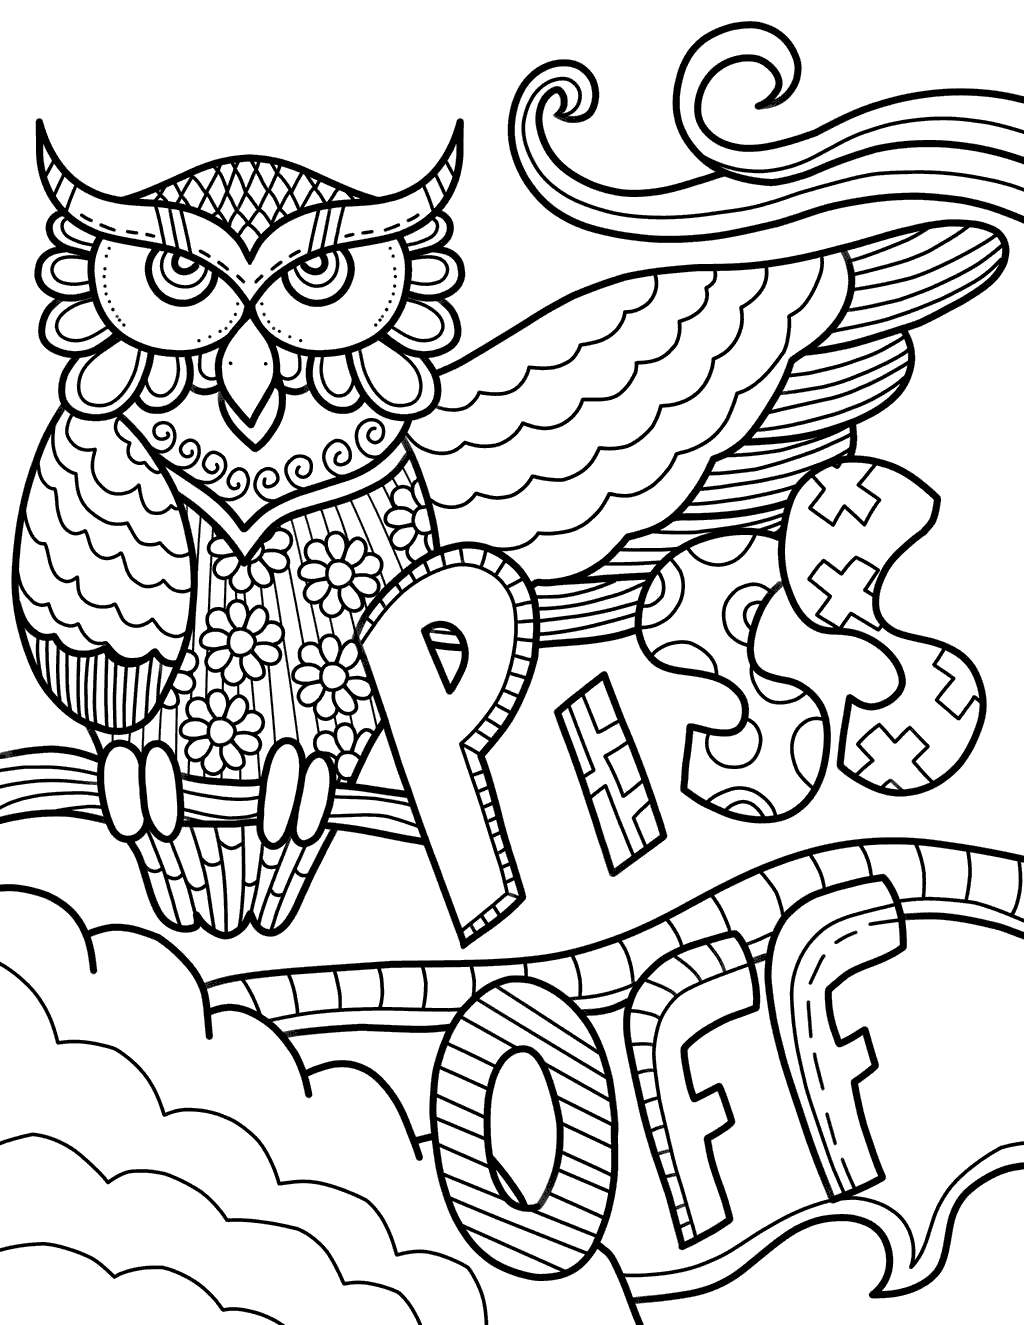 Free Cuss Word Coloring Pages Piss Off printable